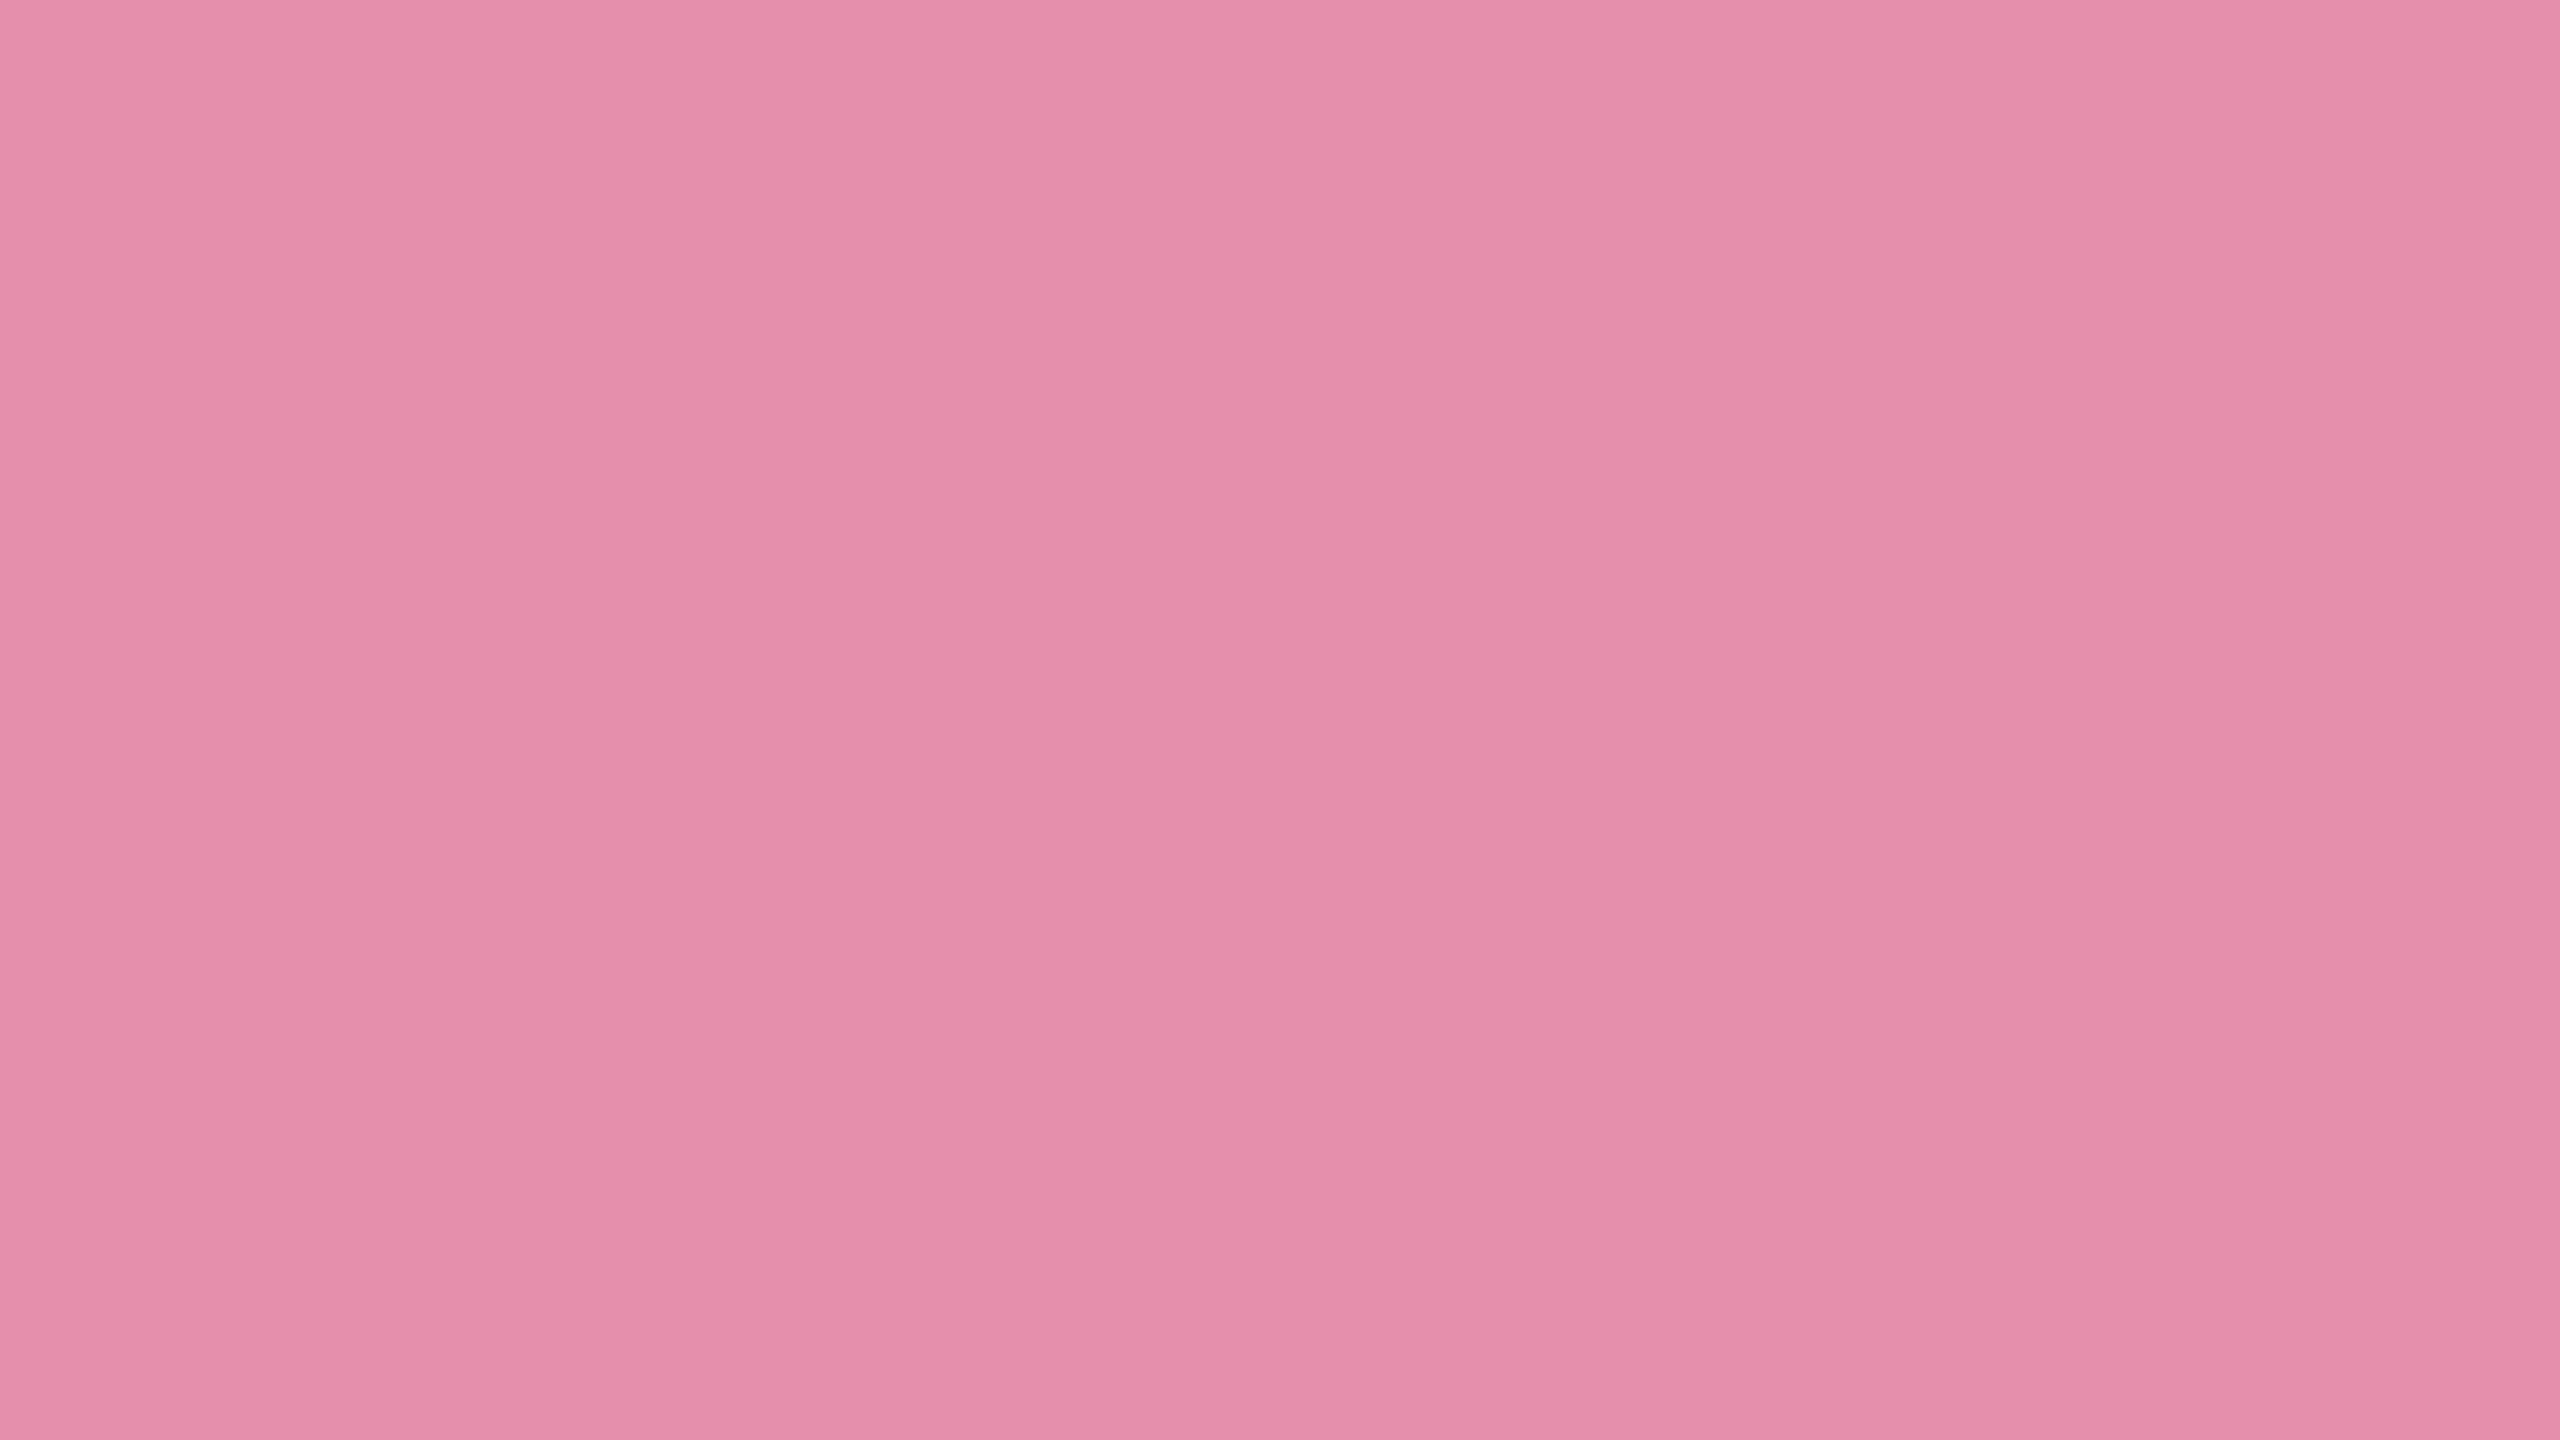 2560x1440 Charm Pink Solid Color Background